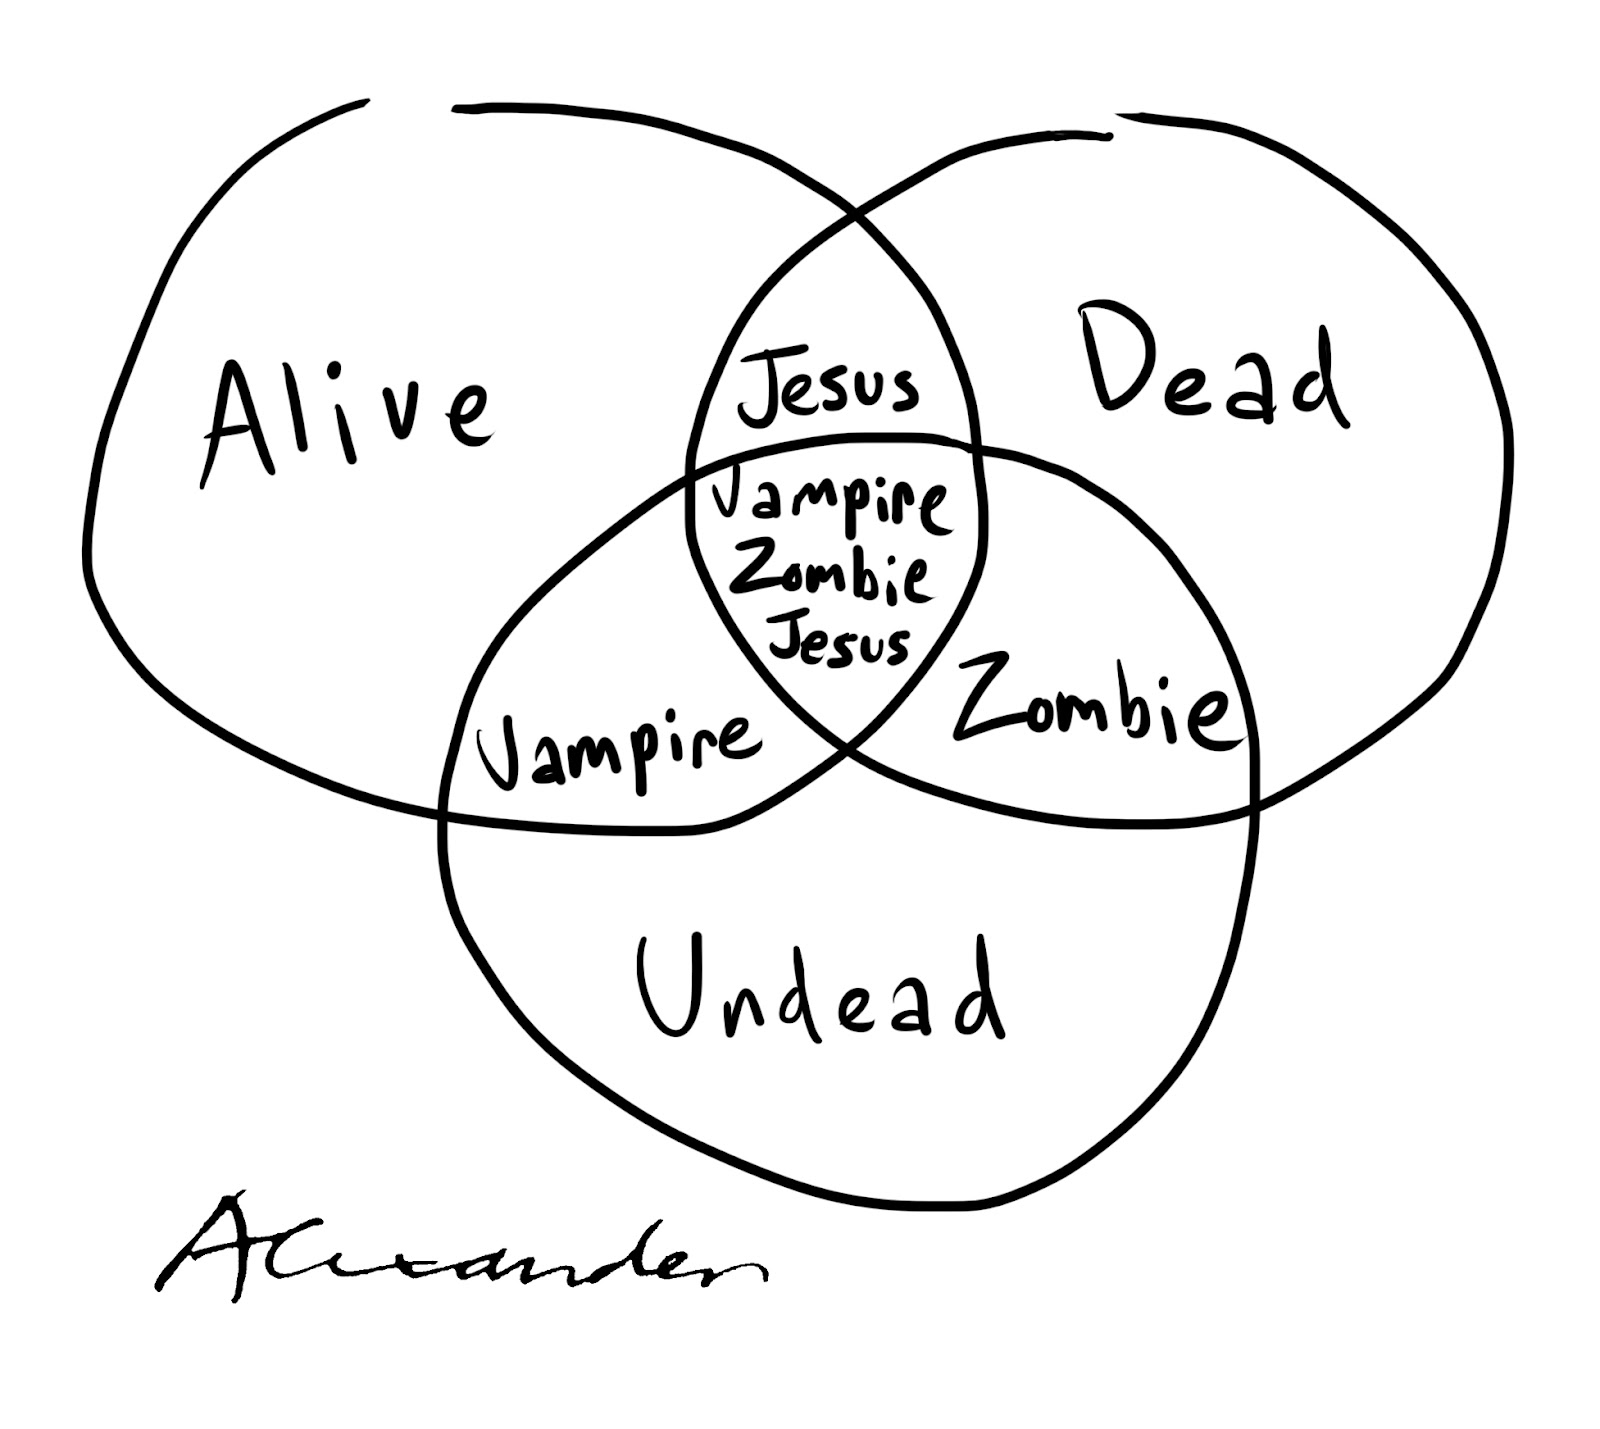 venn diagram excel box wiring diagram Venn Diagram Symbols venn diagram ic tirevi fontanacountryinn sharepoint venn diagram alexanders cartoon blog venn diagram